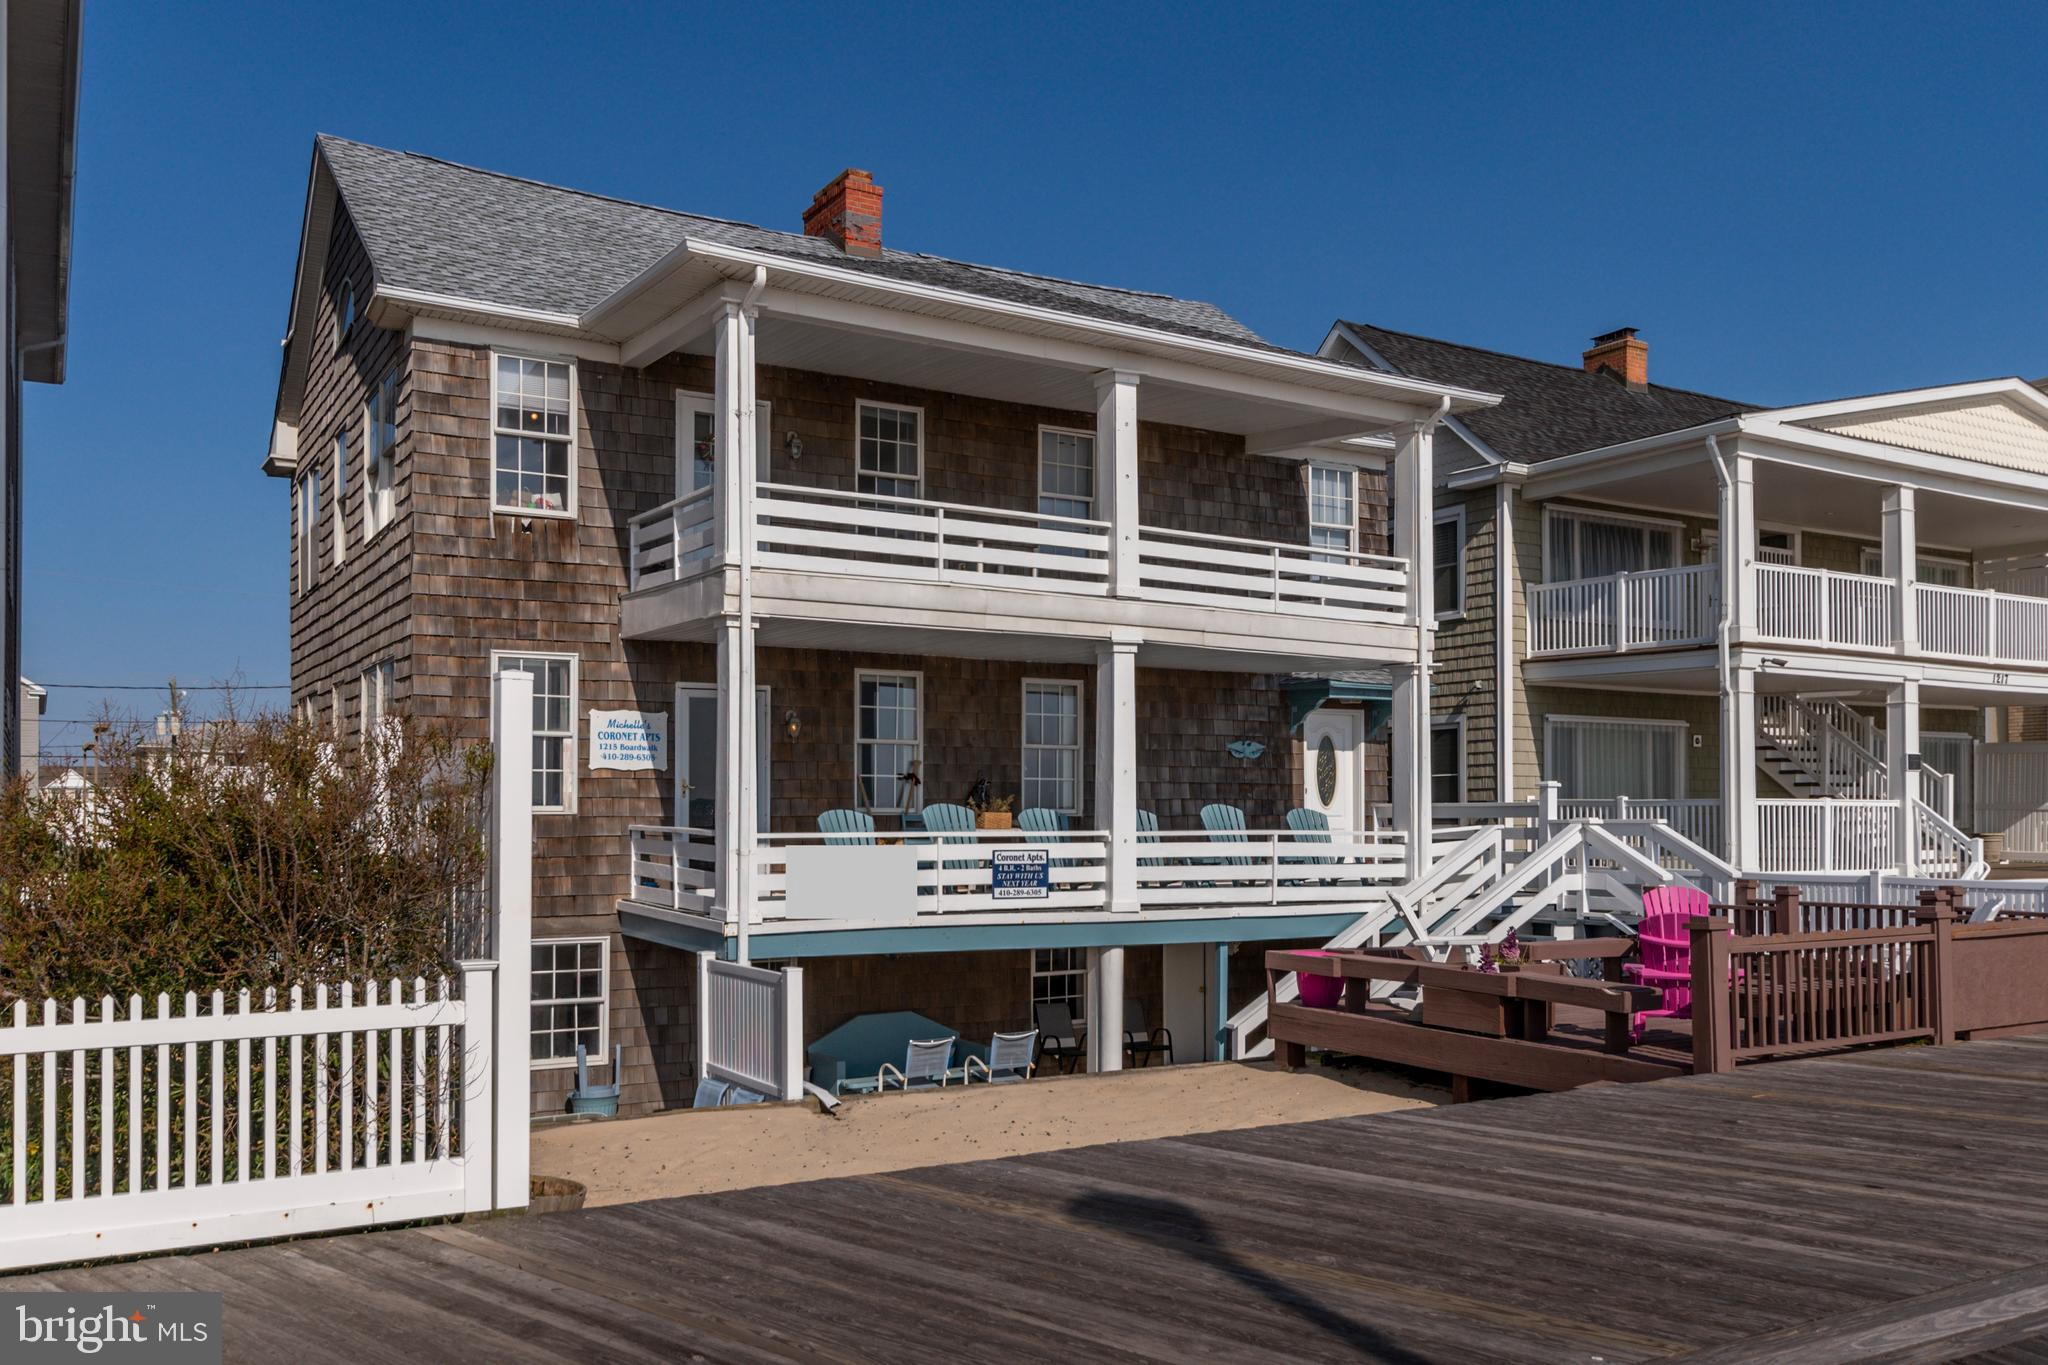 1215 Atlantic Ave, Ocean City, MD, 21842